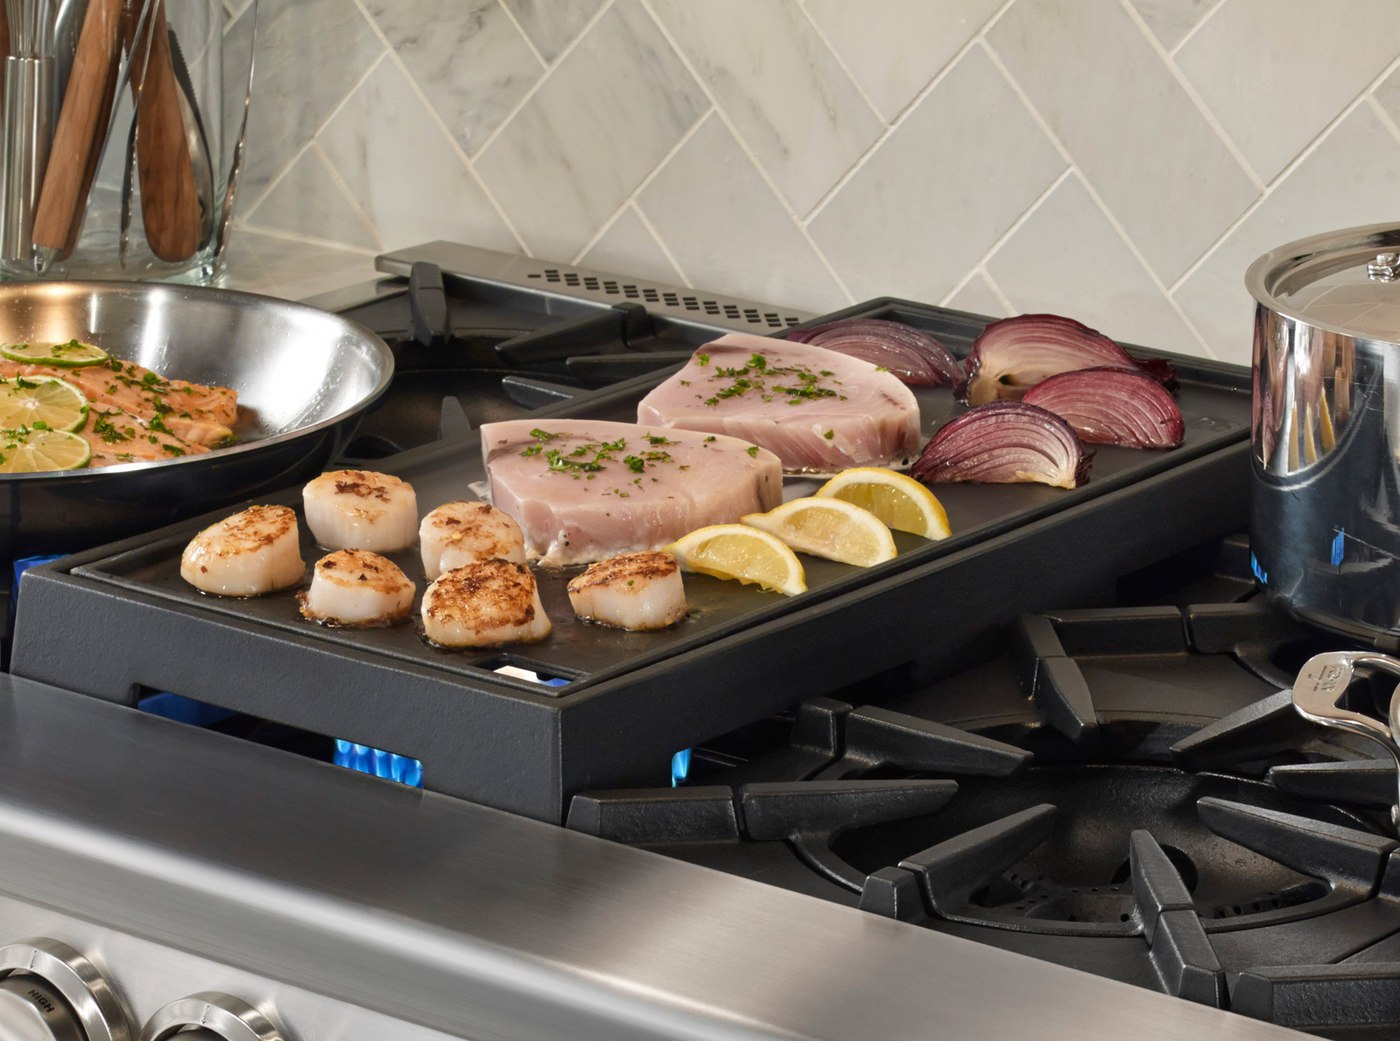 grill-griddle-accessory-bluestar-platinum